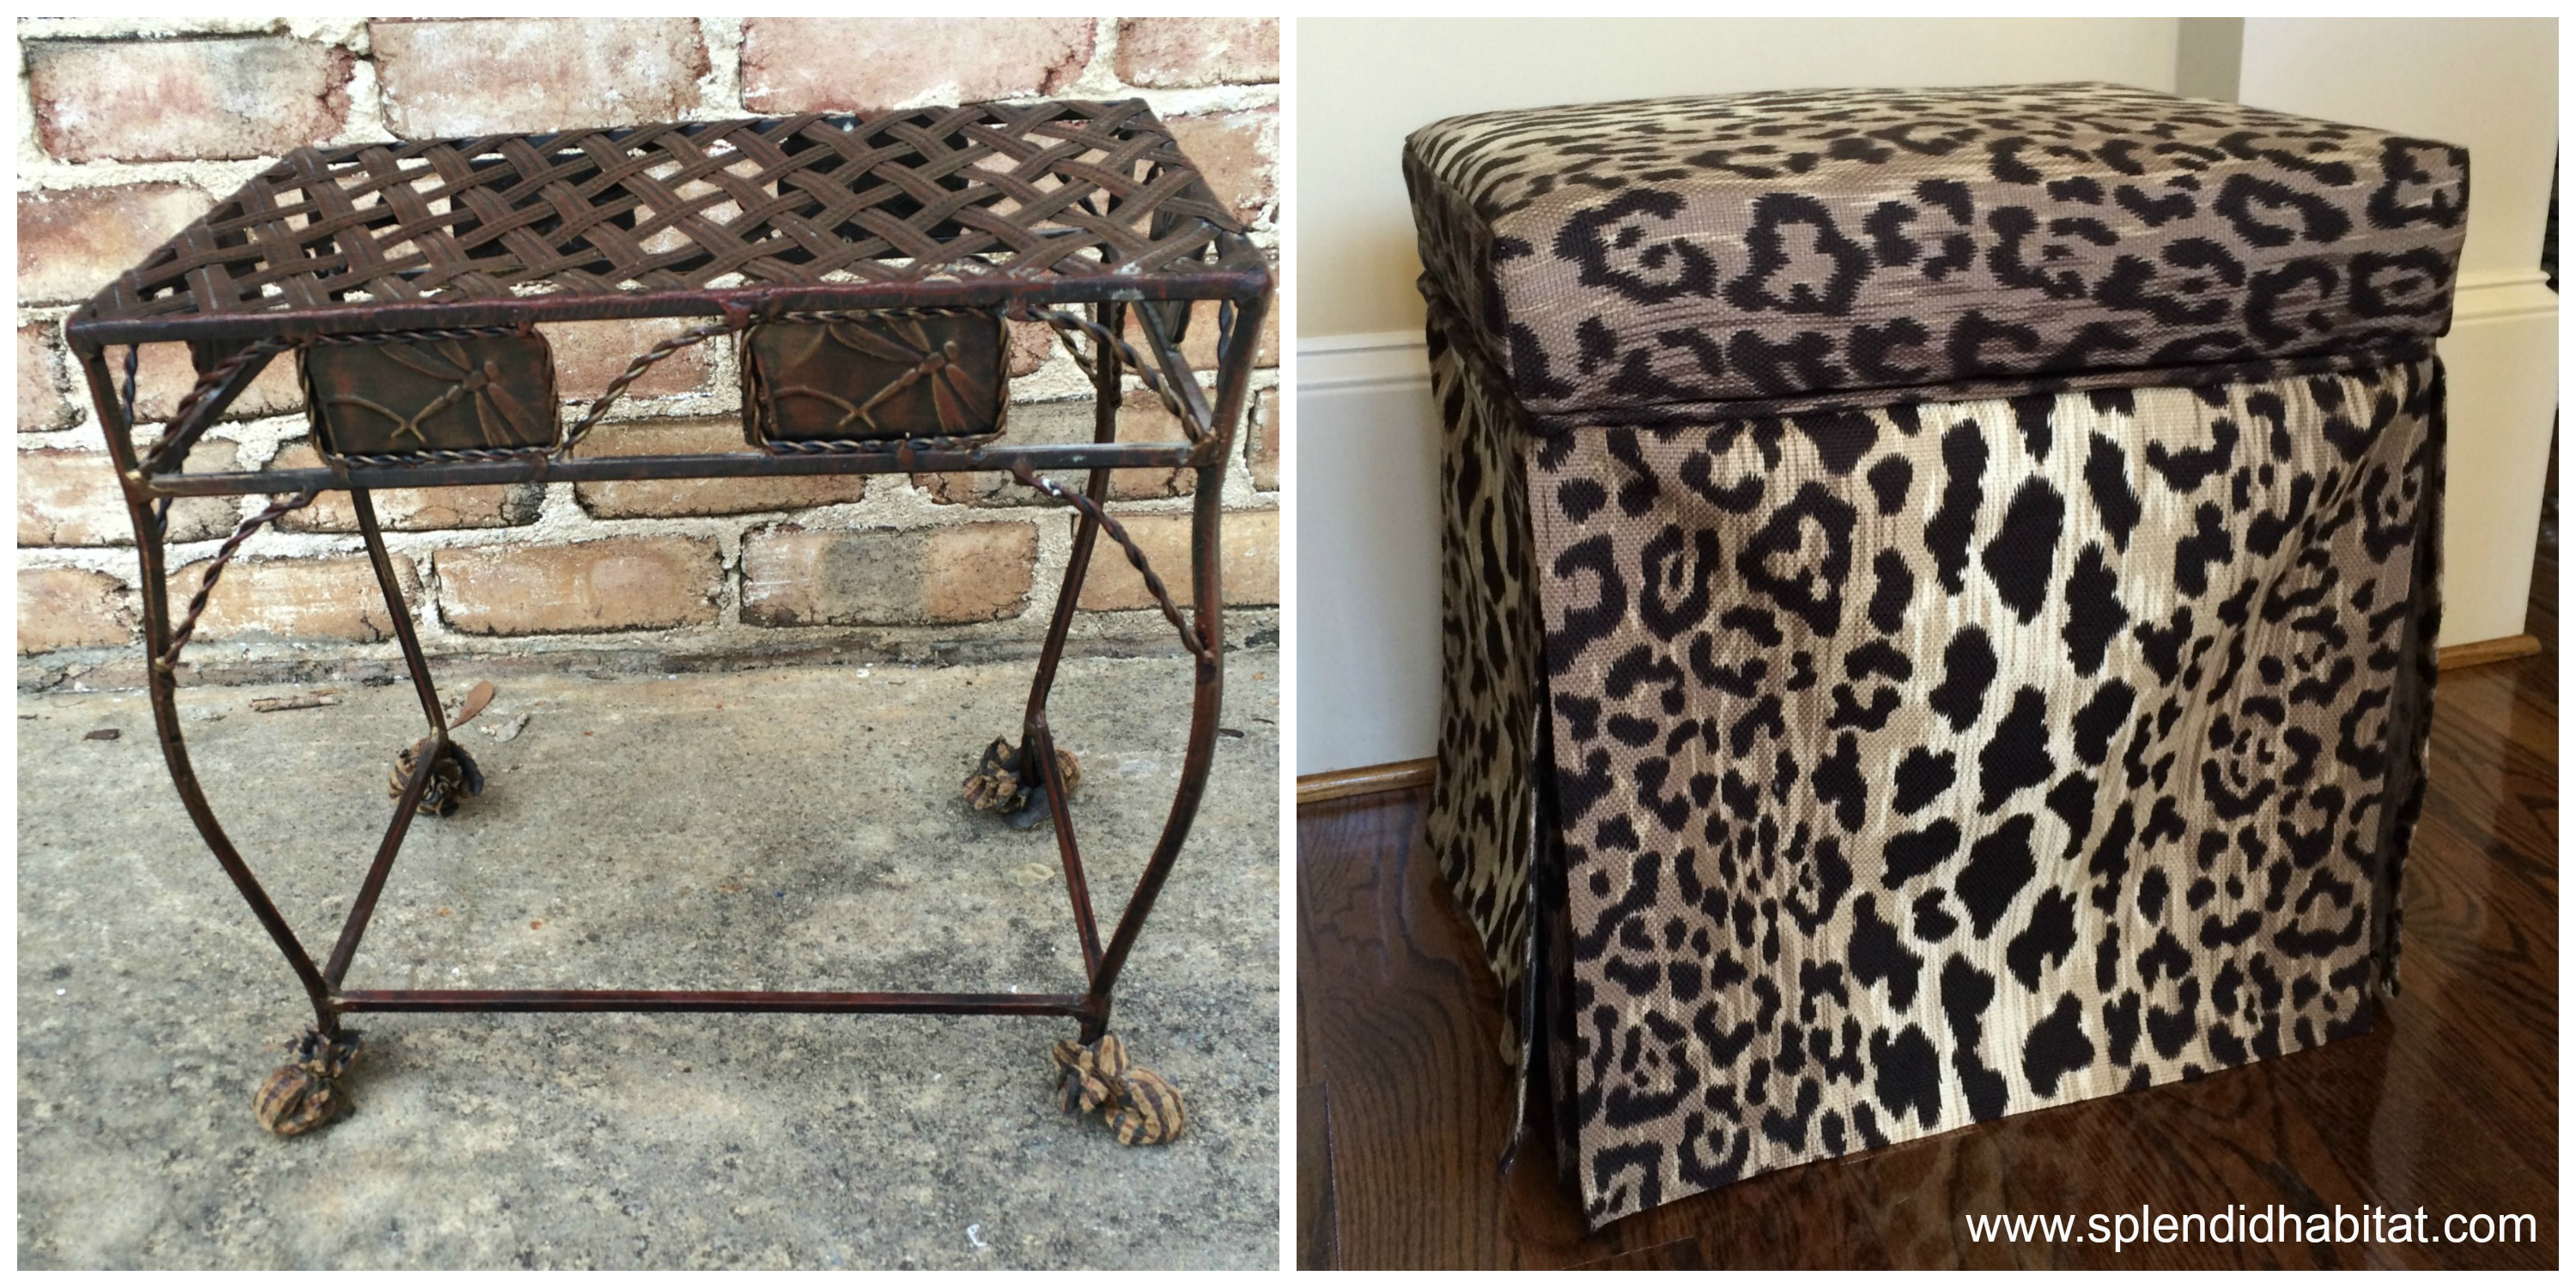 Miraculous From Drab To Fab How To Transform A Wire Stool To A Vanity Cjindustries Chair Design For Home Cjindustriesco